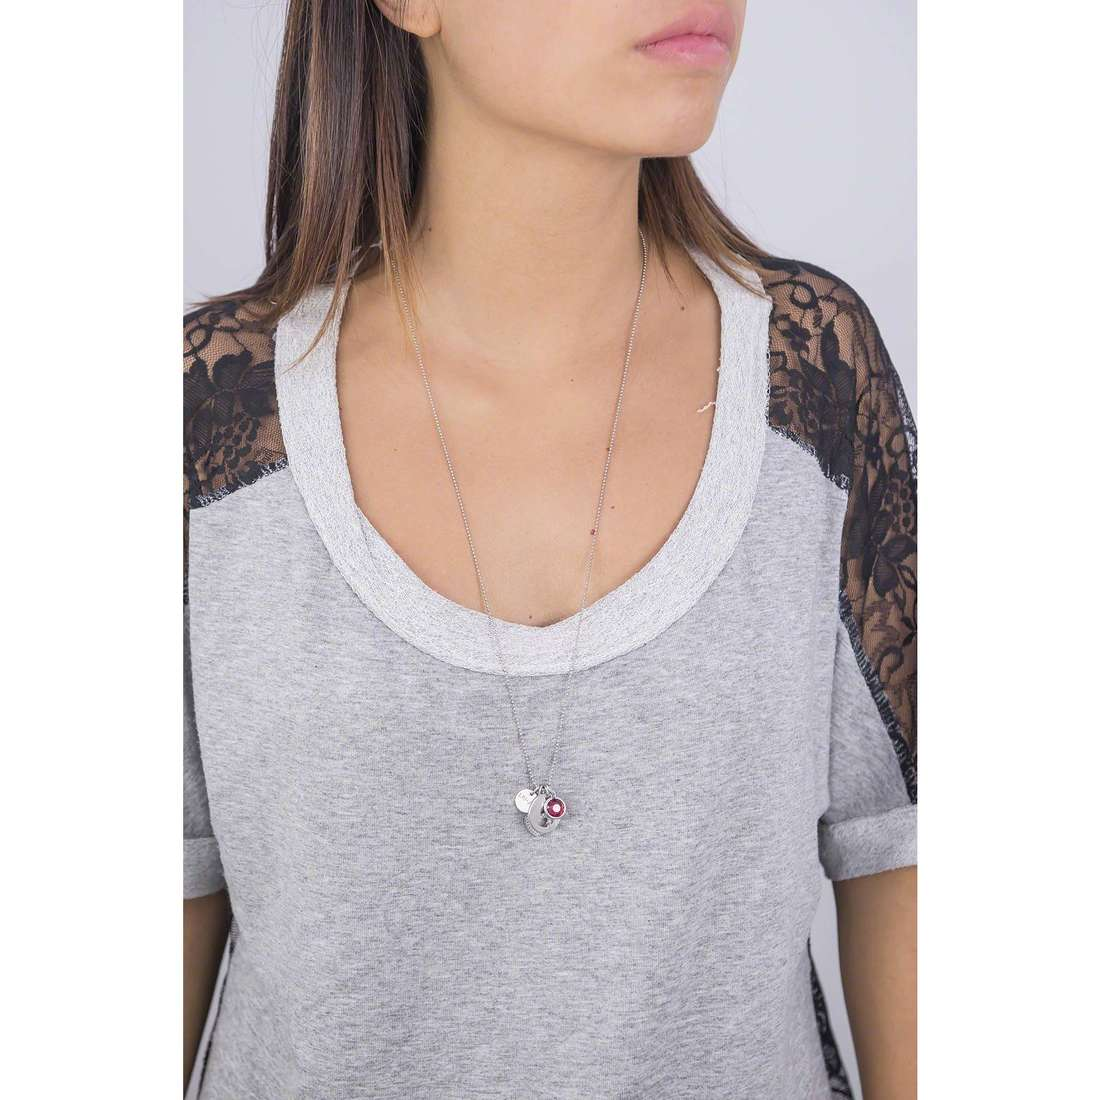 Liujo necklaces Destini woman LJ970 indosso